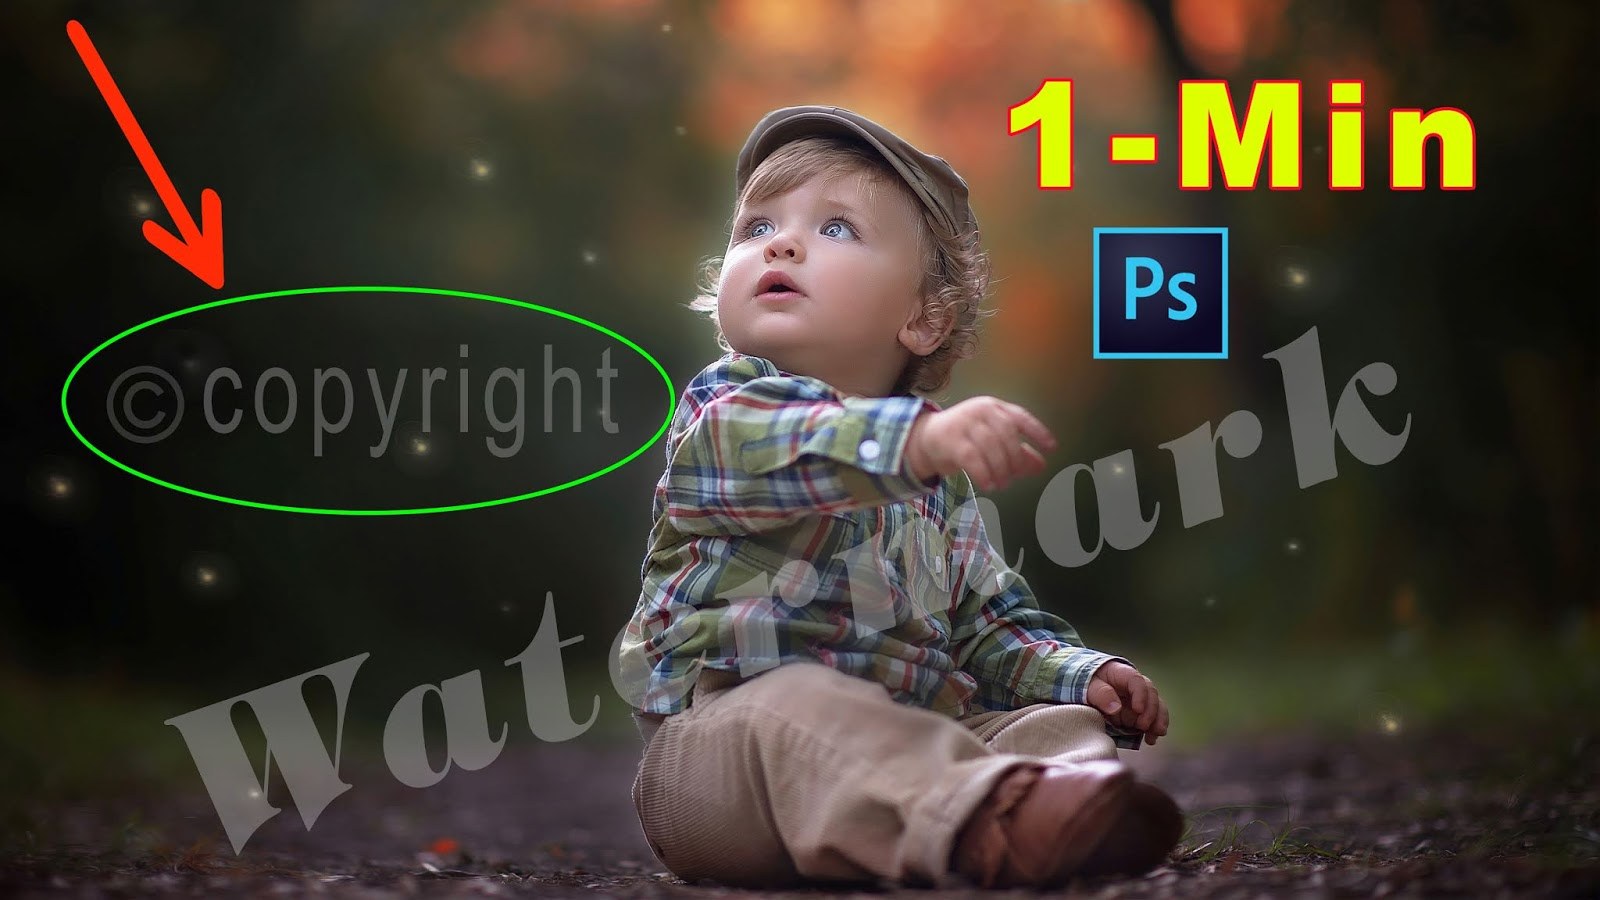 How to Quick WATERMARK REMOVE from Photo for Beginners into 1 Minute in Photoshop CC